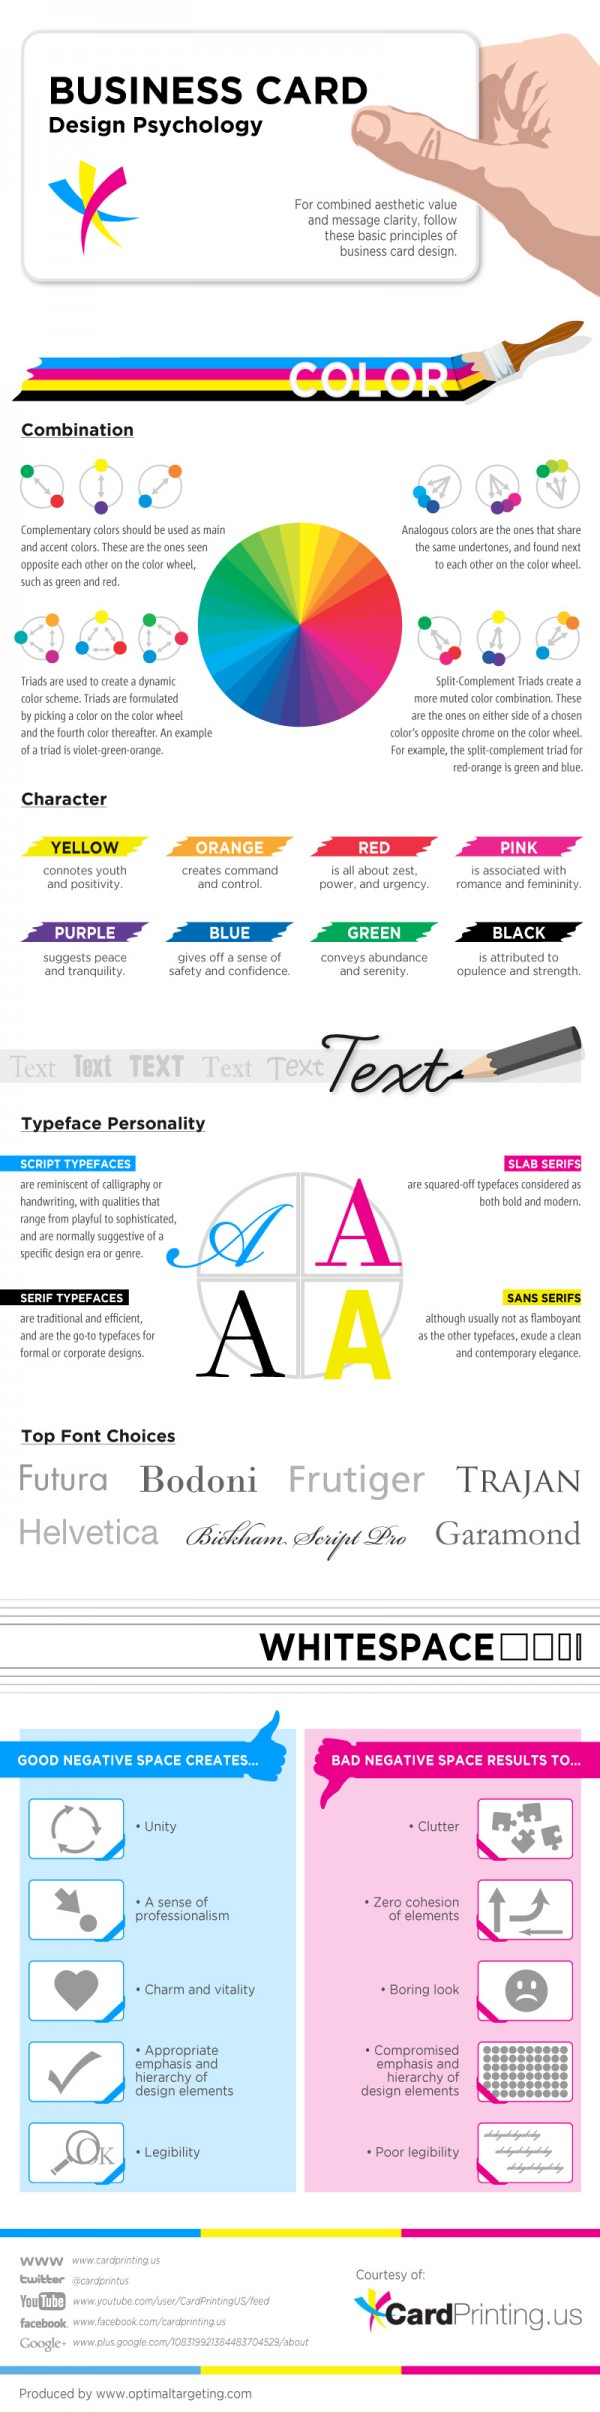 informative graphic regarding the psychological considerations when designing a business card